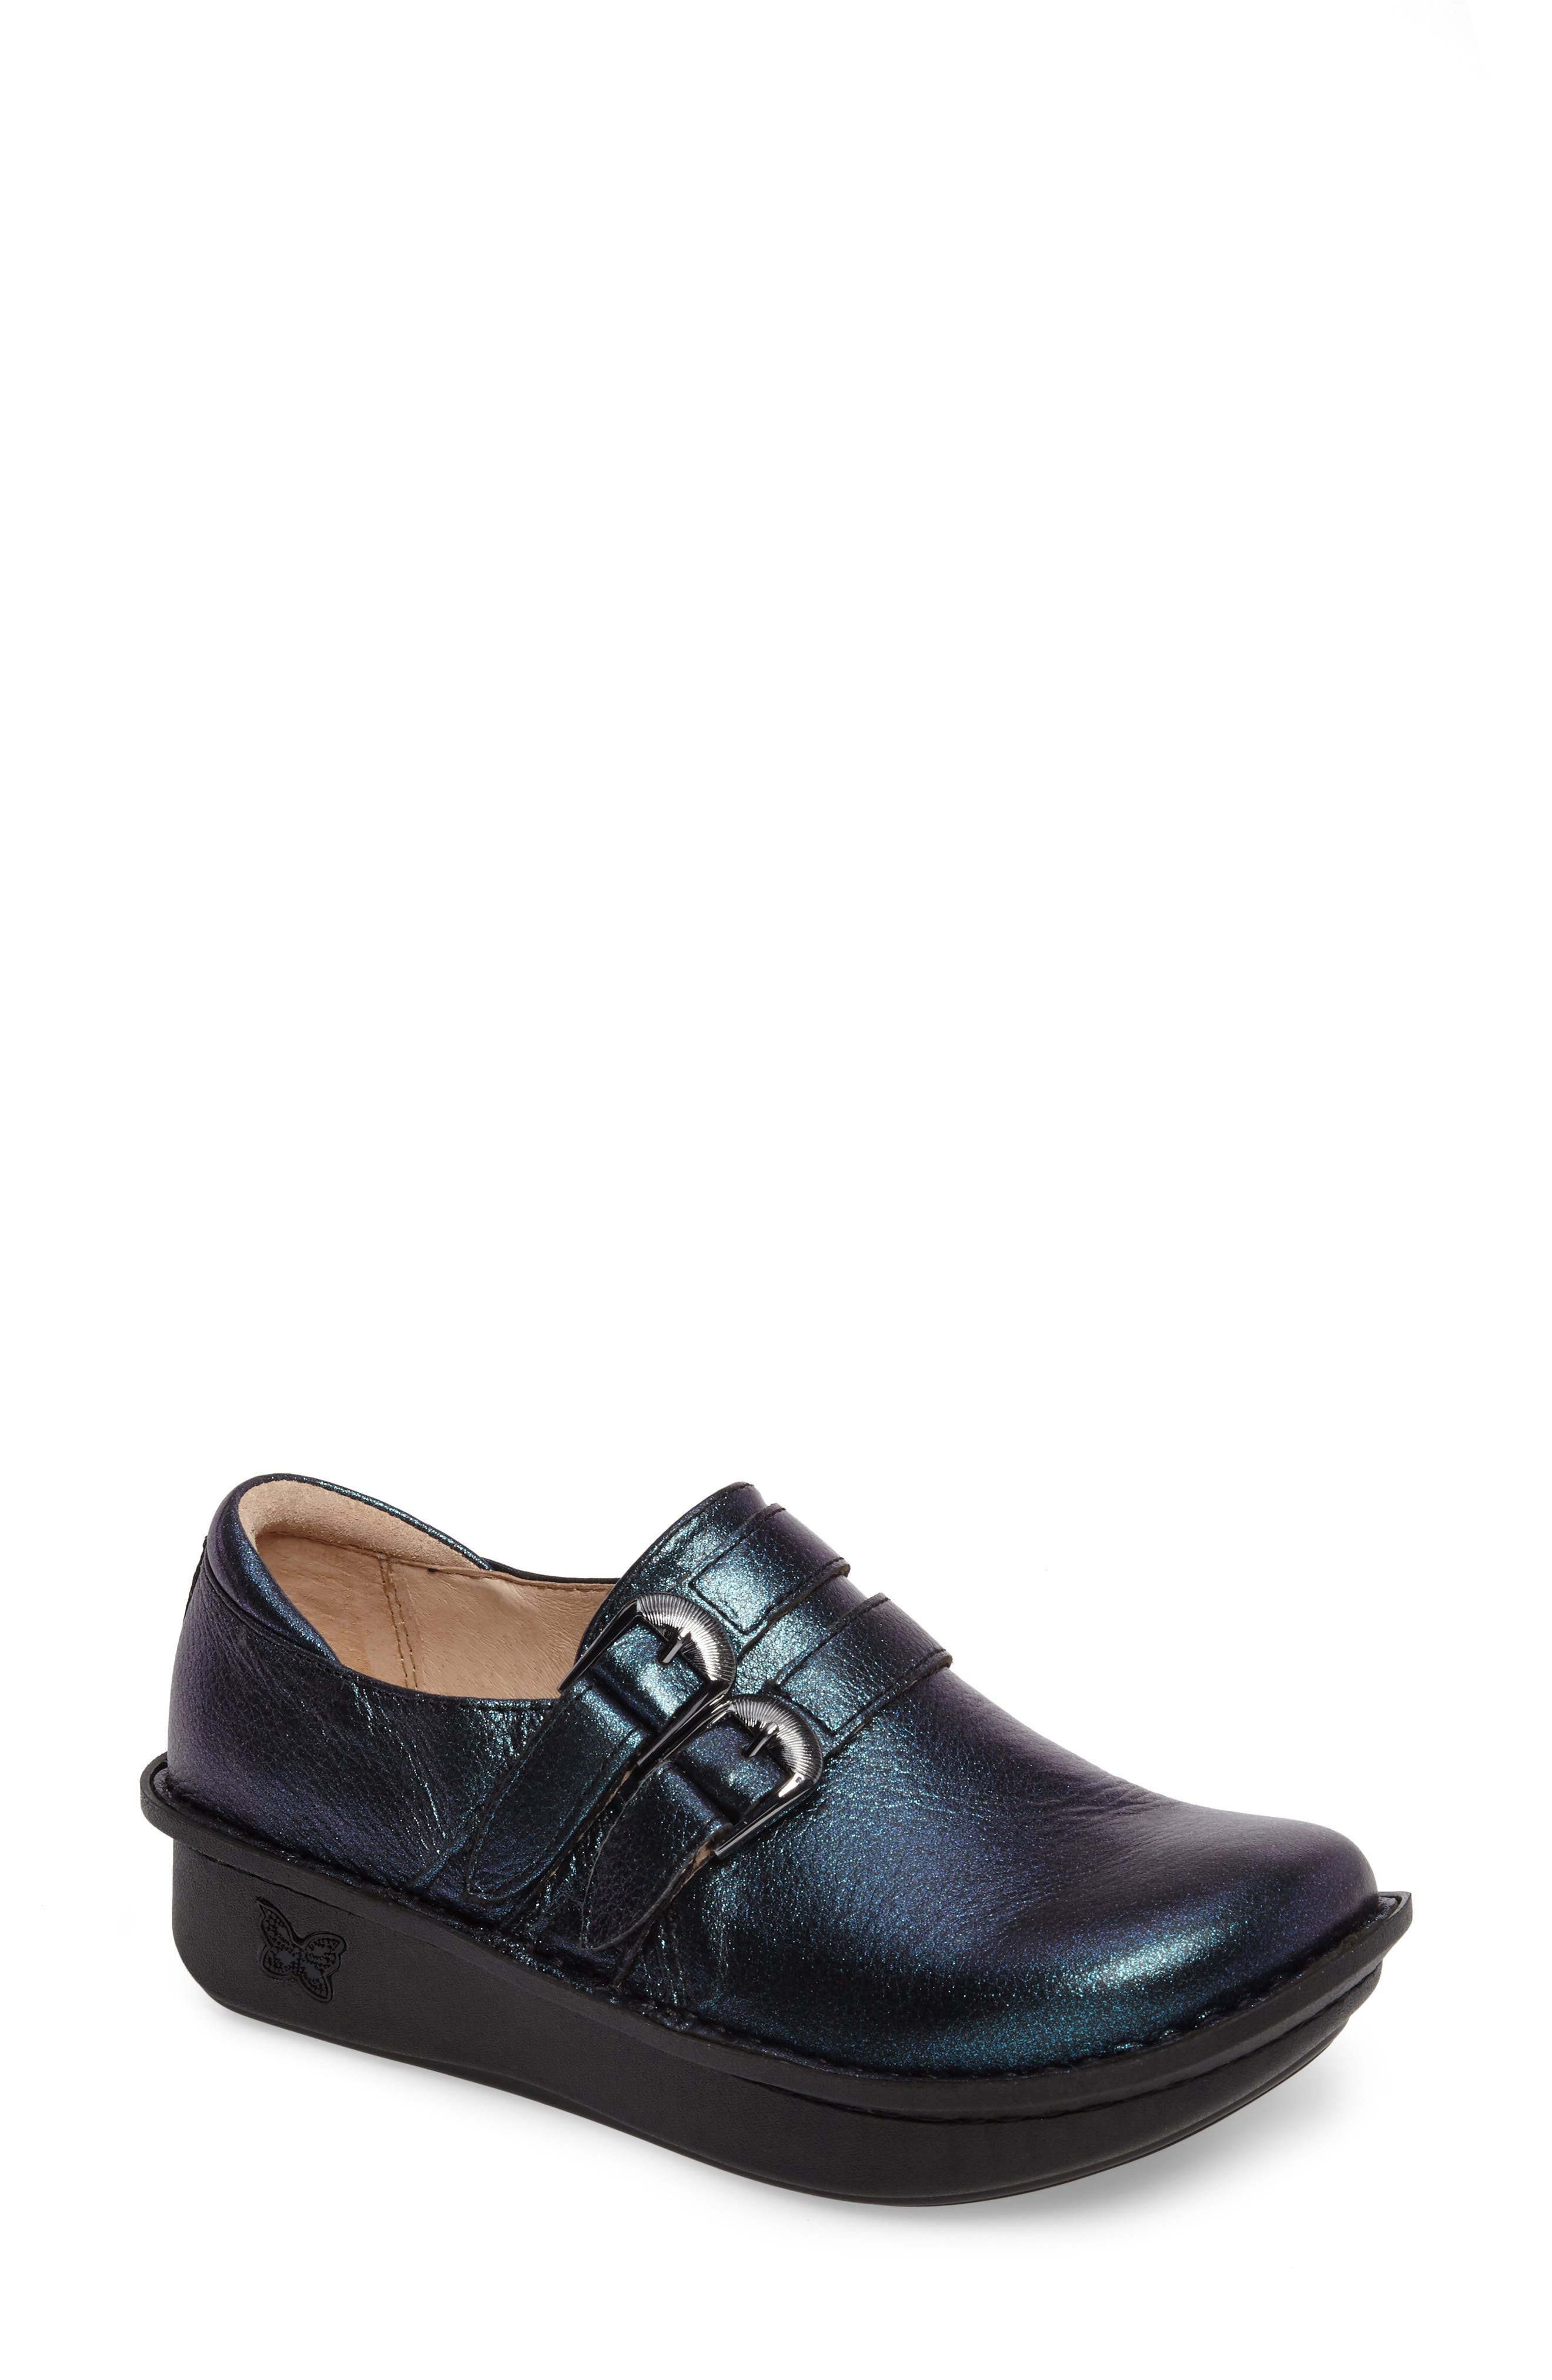 'Alli' Loafer,                             Main thumbnail 2, color,